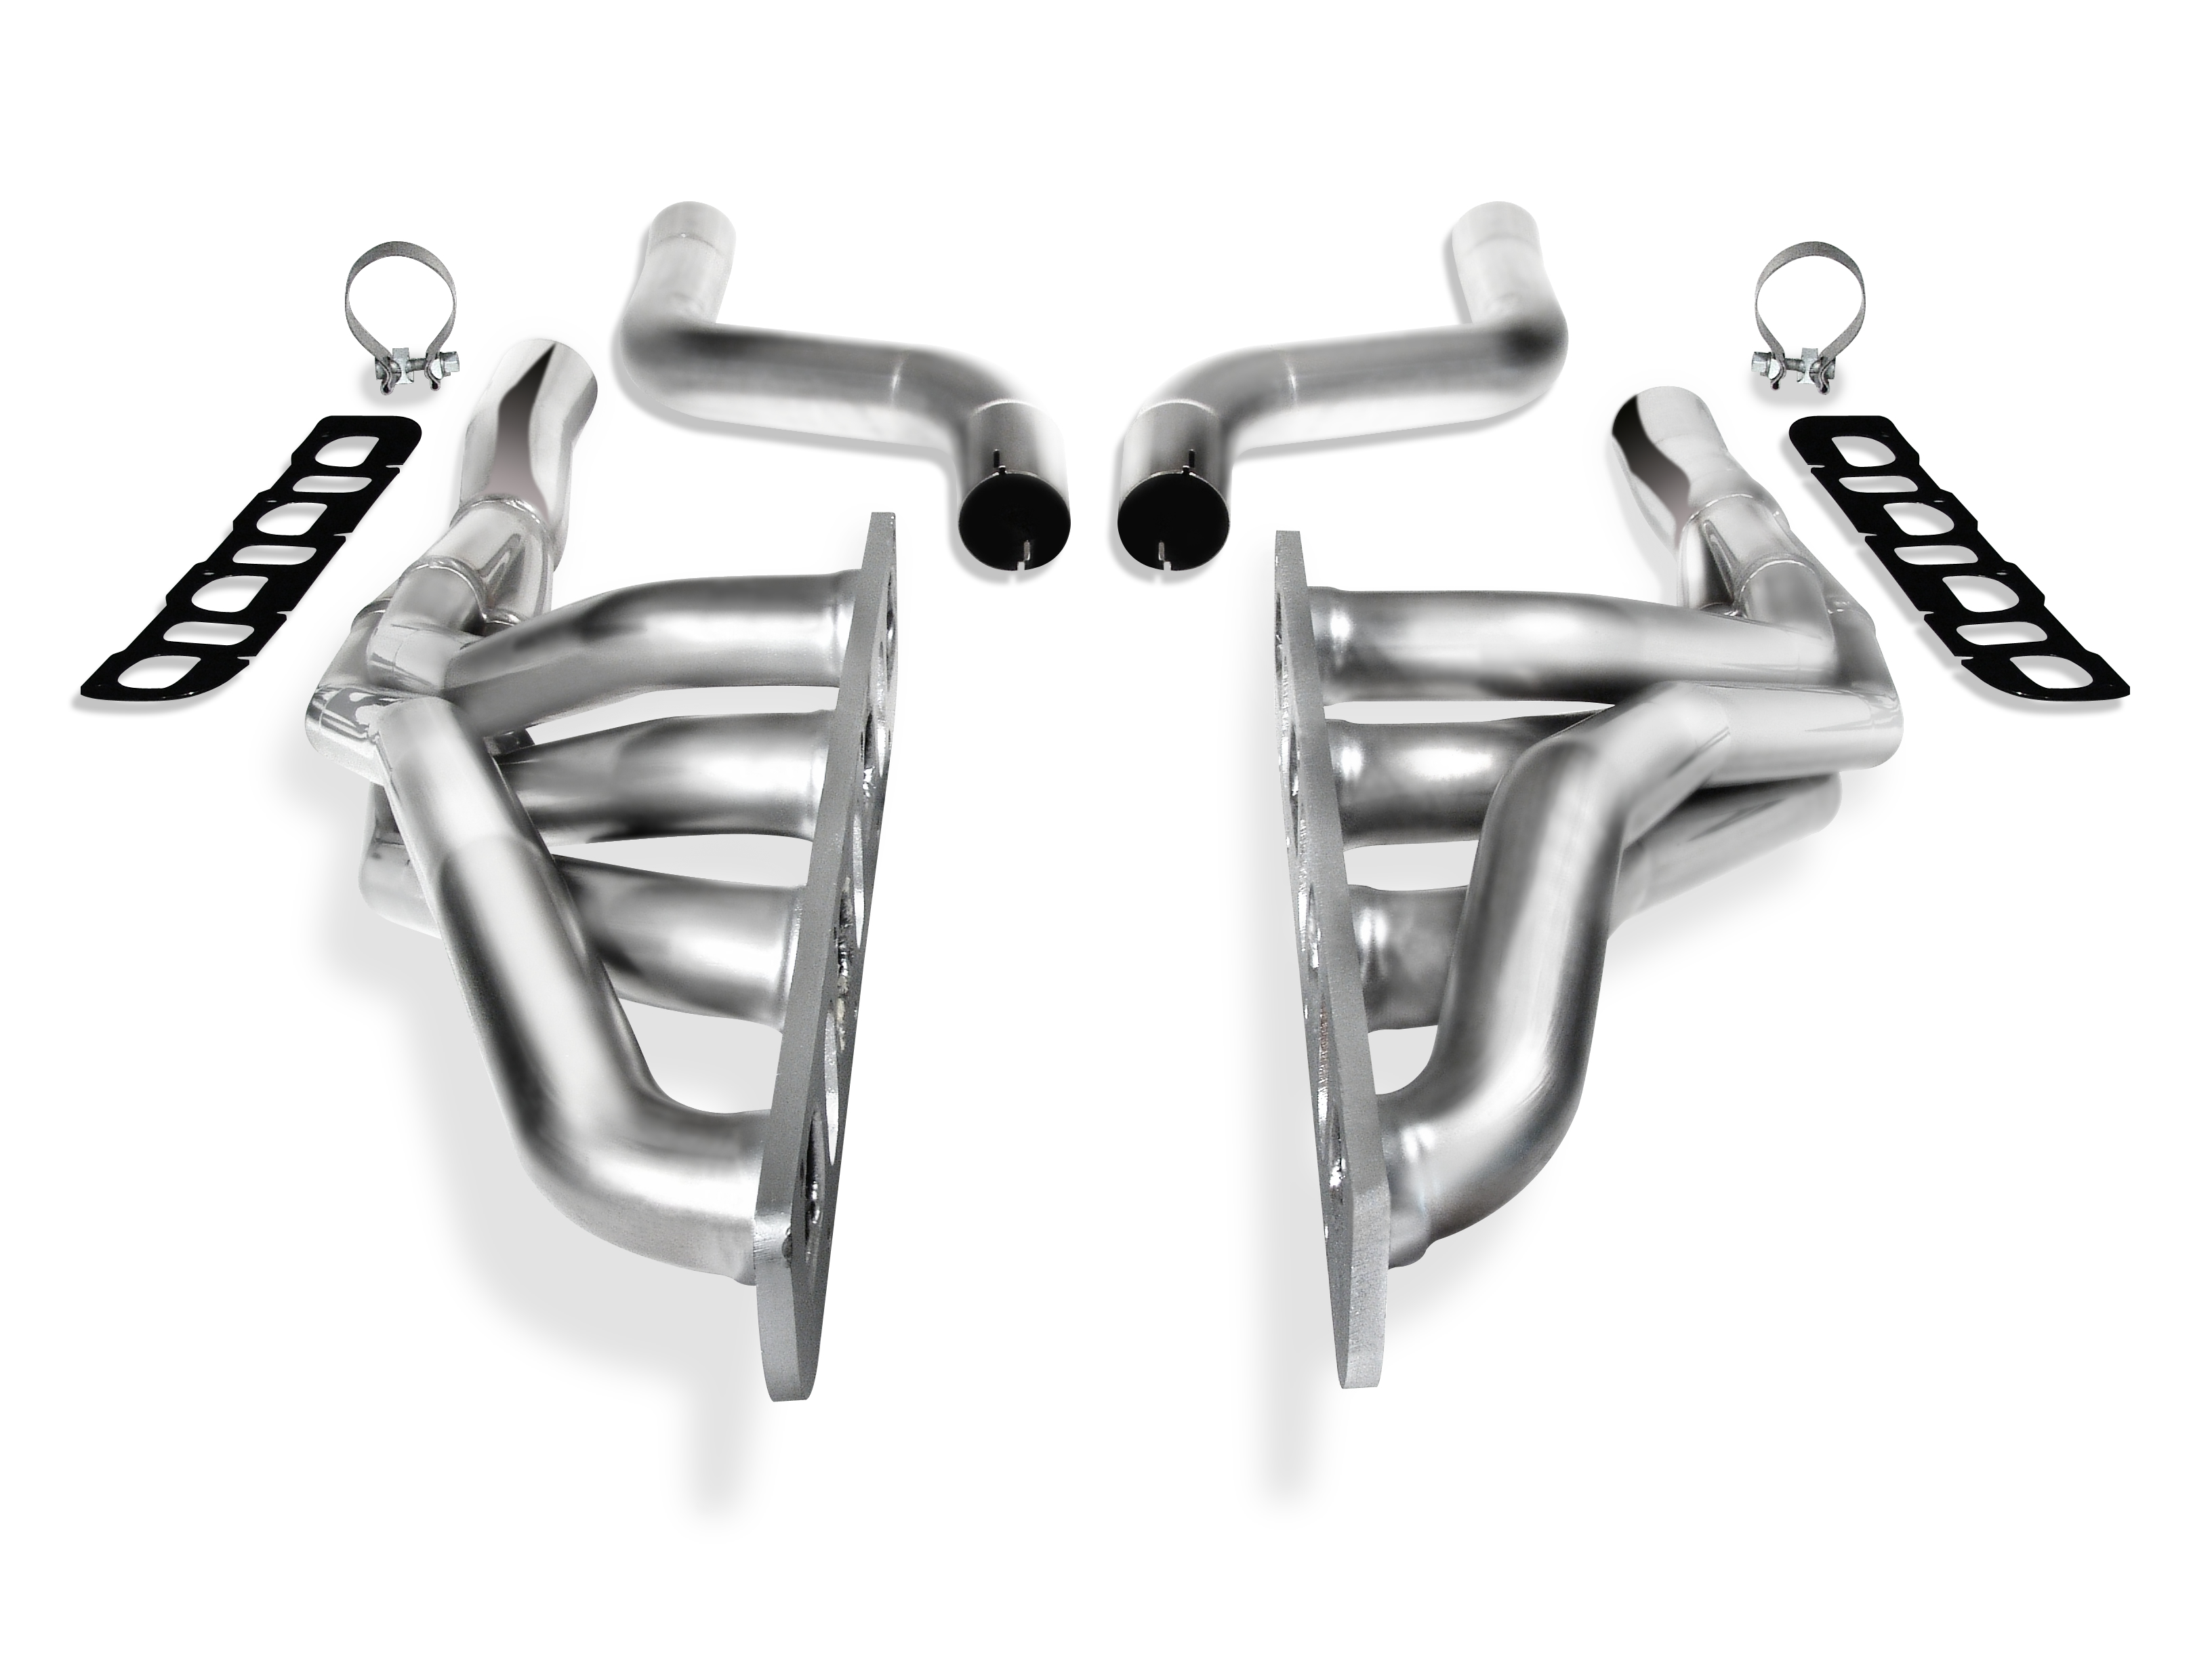 Chrysler 300C SRT-8 6.1l/6.4l V8 2008-2011 Borla Long Tube Exhaust Headers (offroad Only)